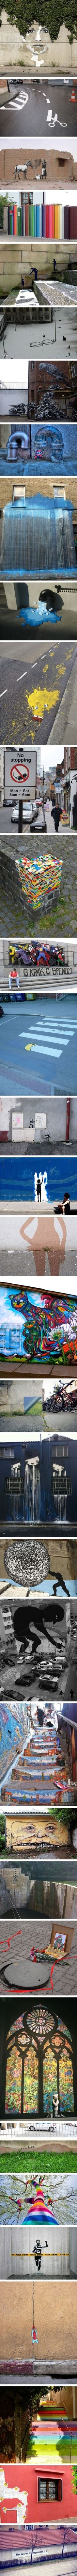 Street Art Awesomeness =)